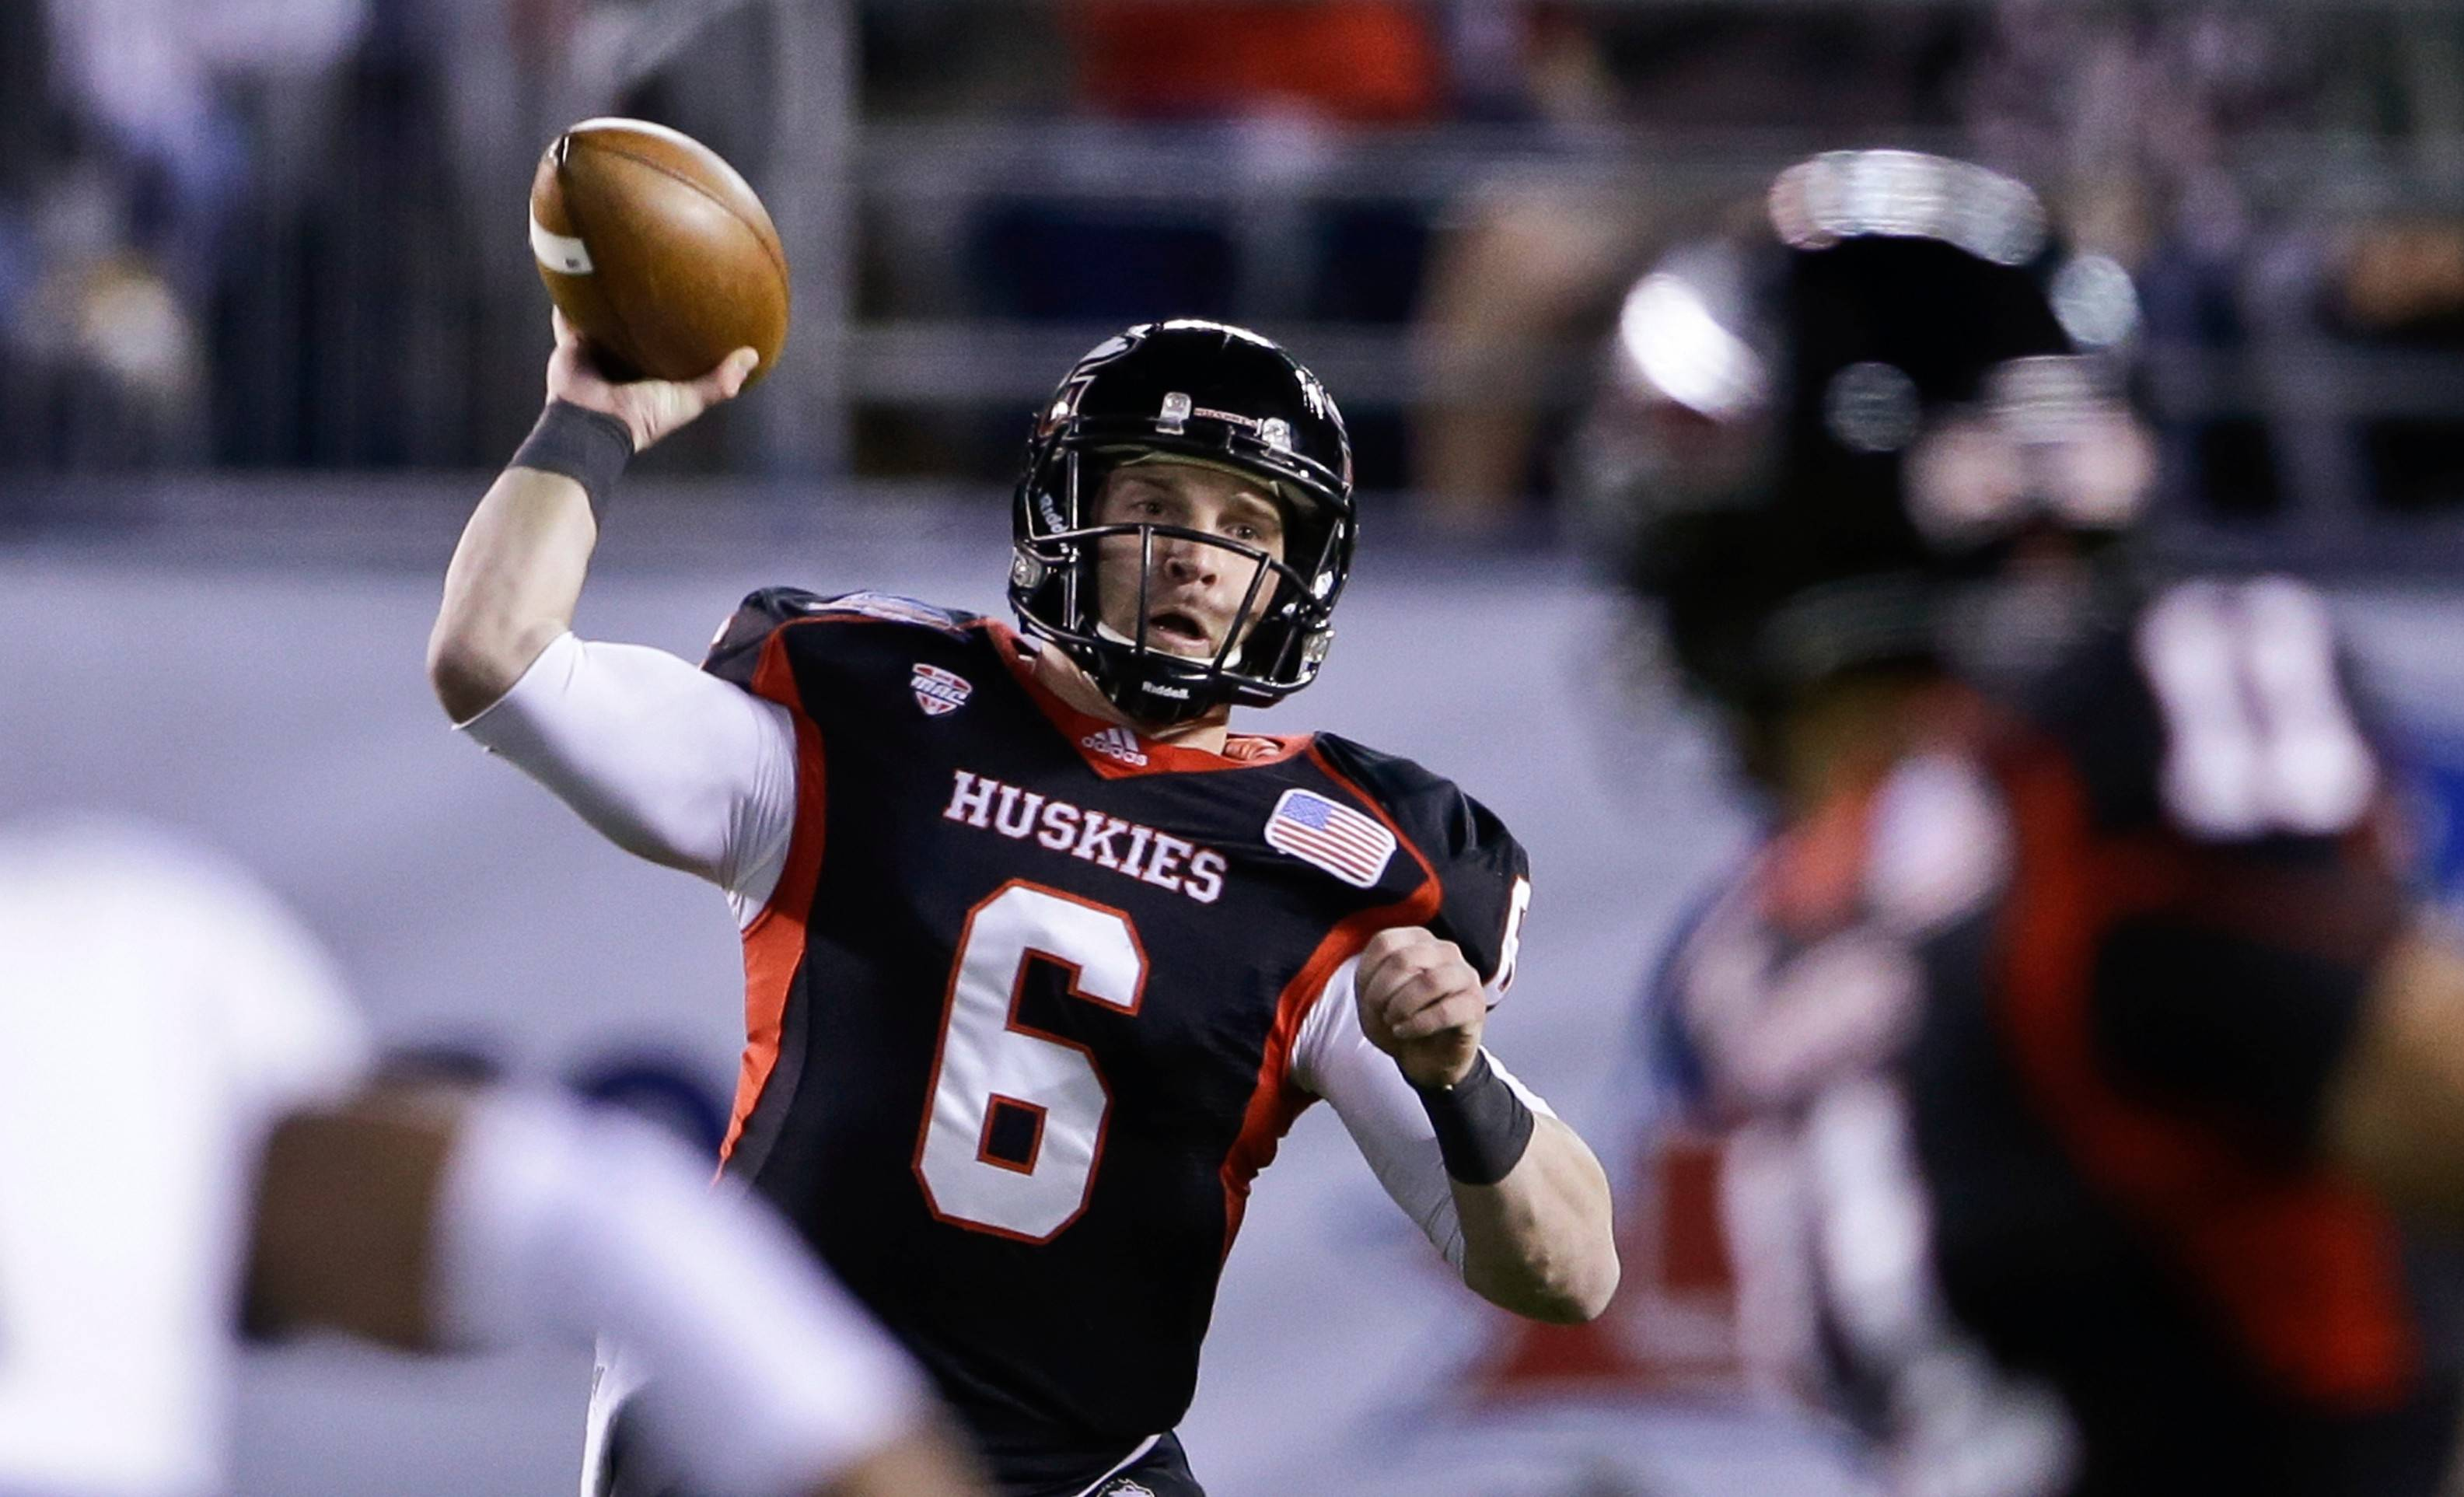 Northern Illinois quarterback Jordan Lynch throws a pass against Utah State in Poinsettia Bowl in San Diego. ESPN and the MAC officially announced a 13-year media rights agreement.